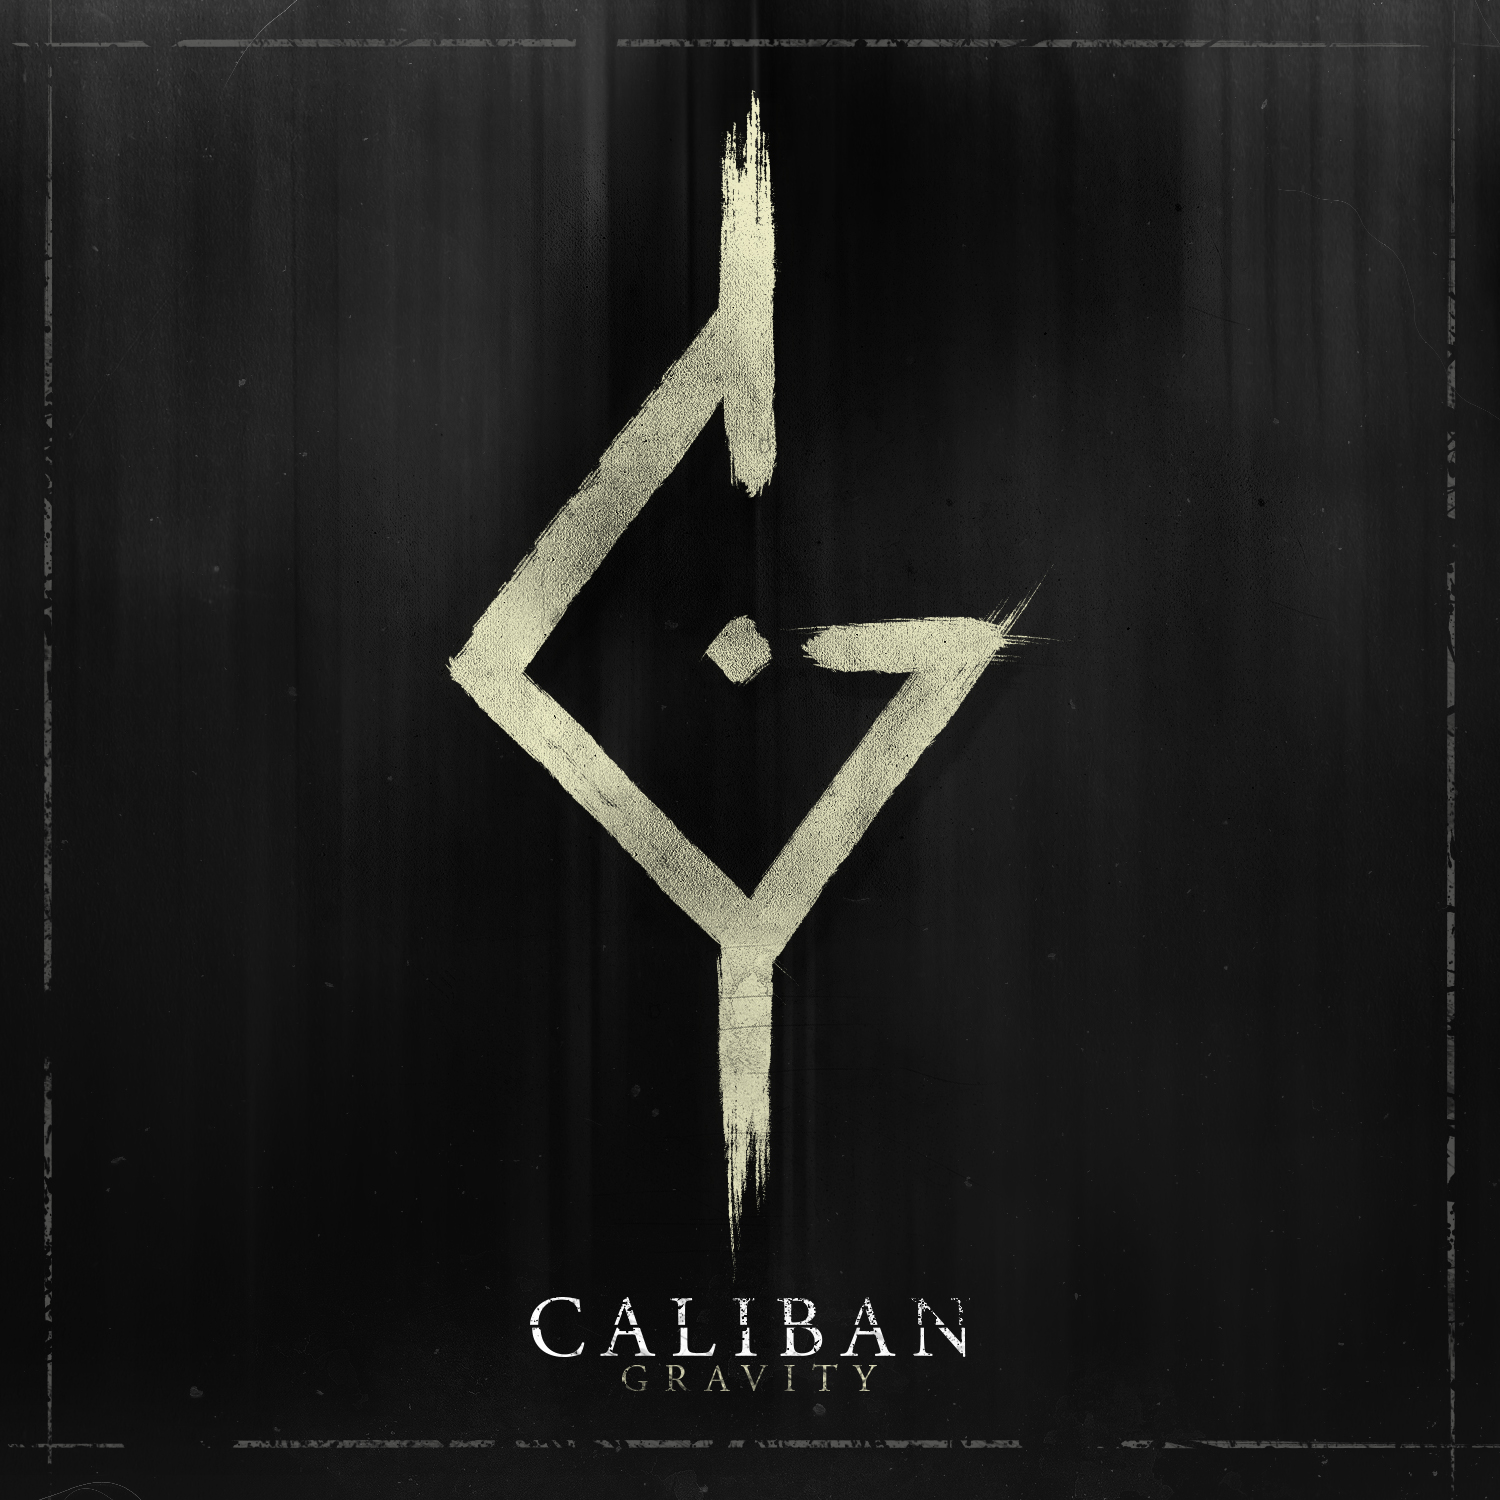 CD_Caliban